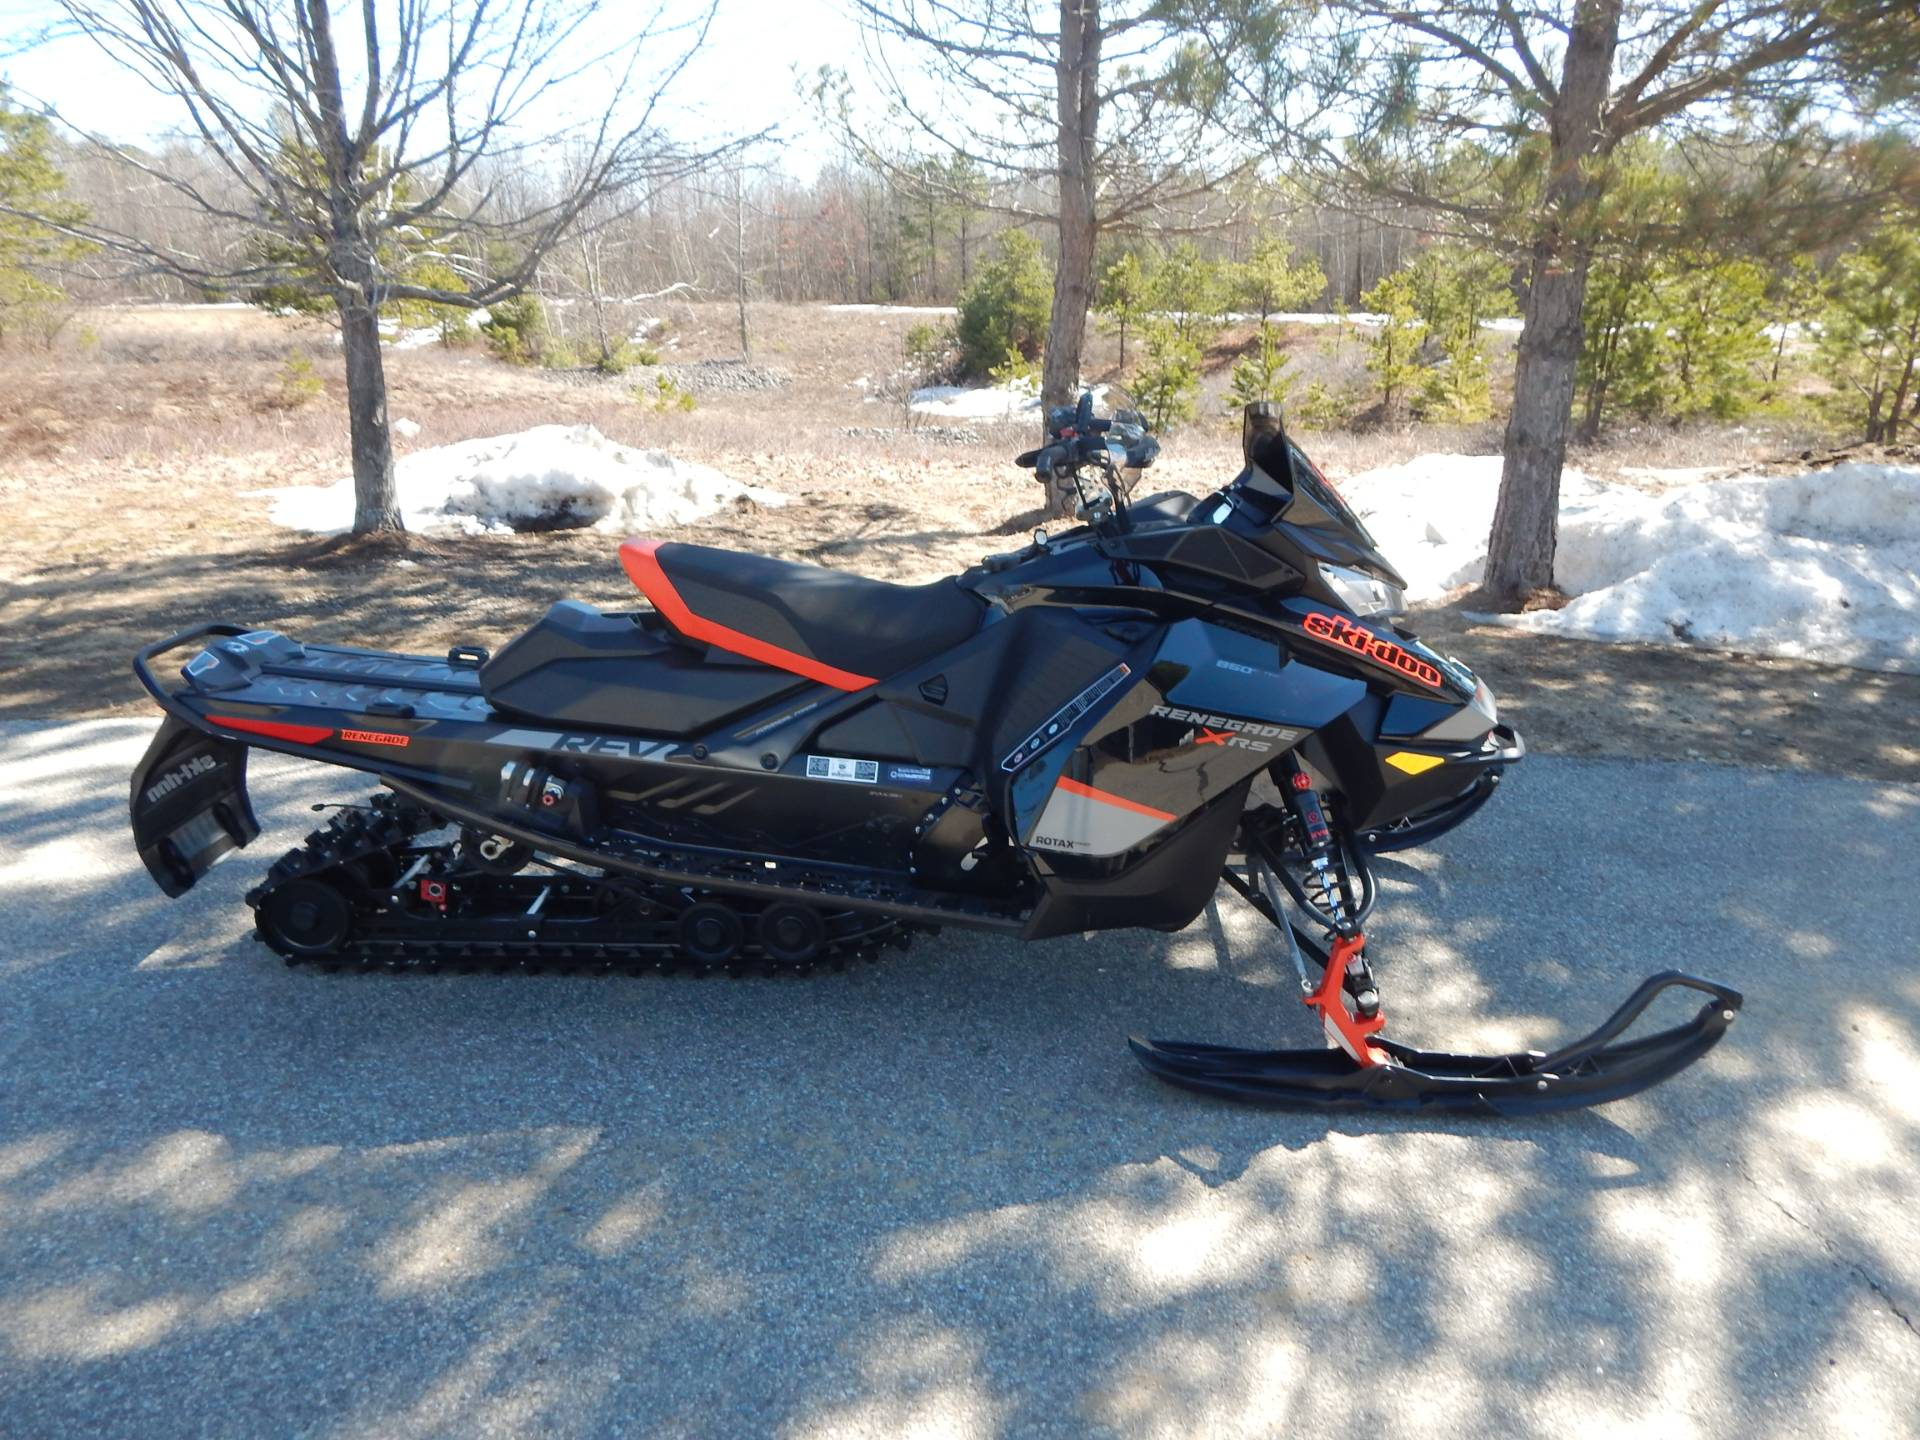 2020 Ski-Doo Renegade X-RS 850 E-Tec in Concord, New Hampshire - Photo 1